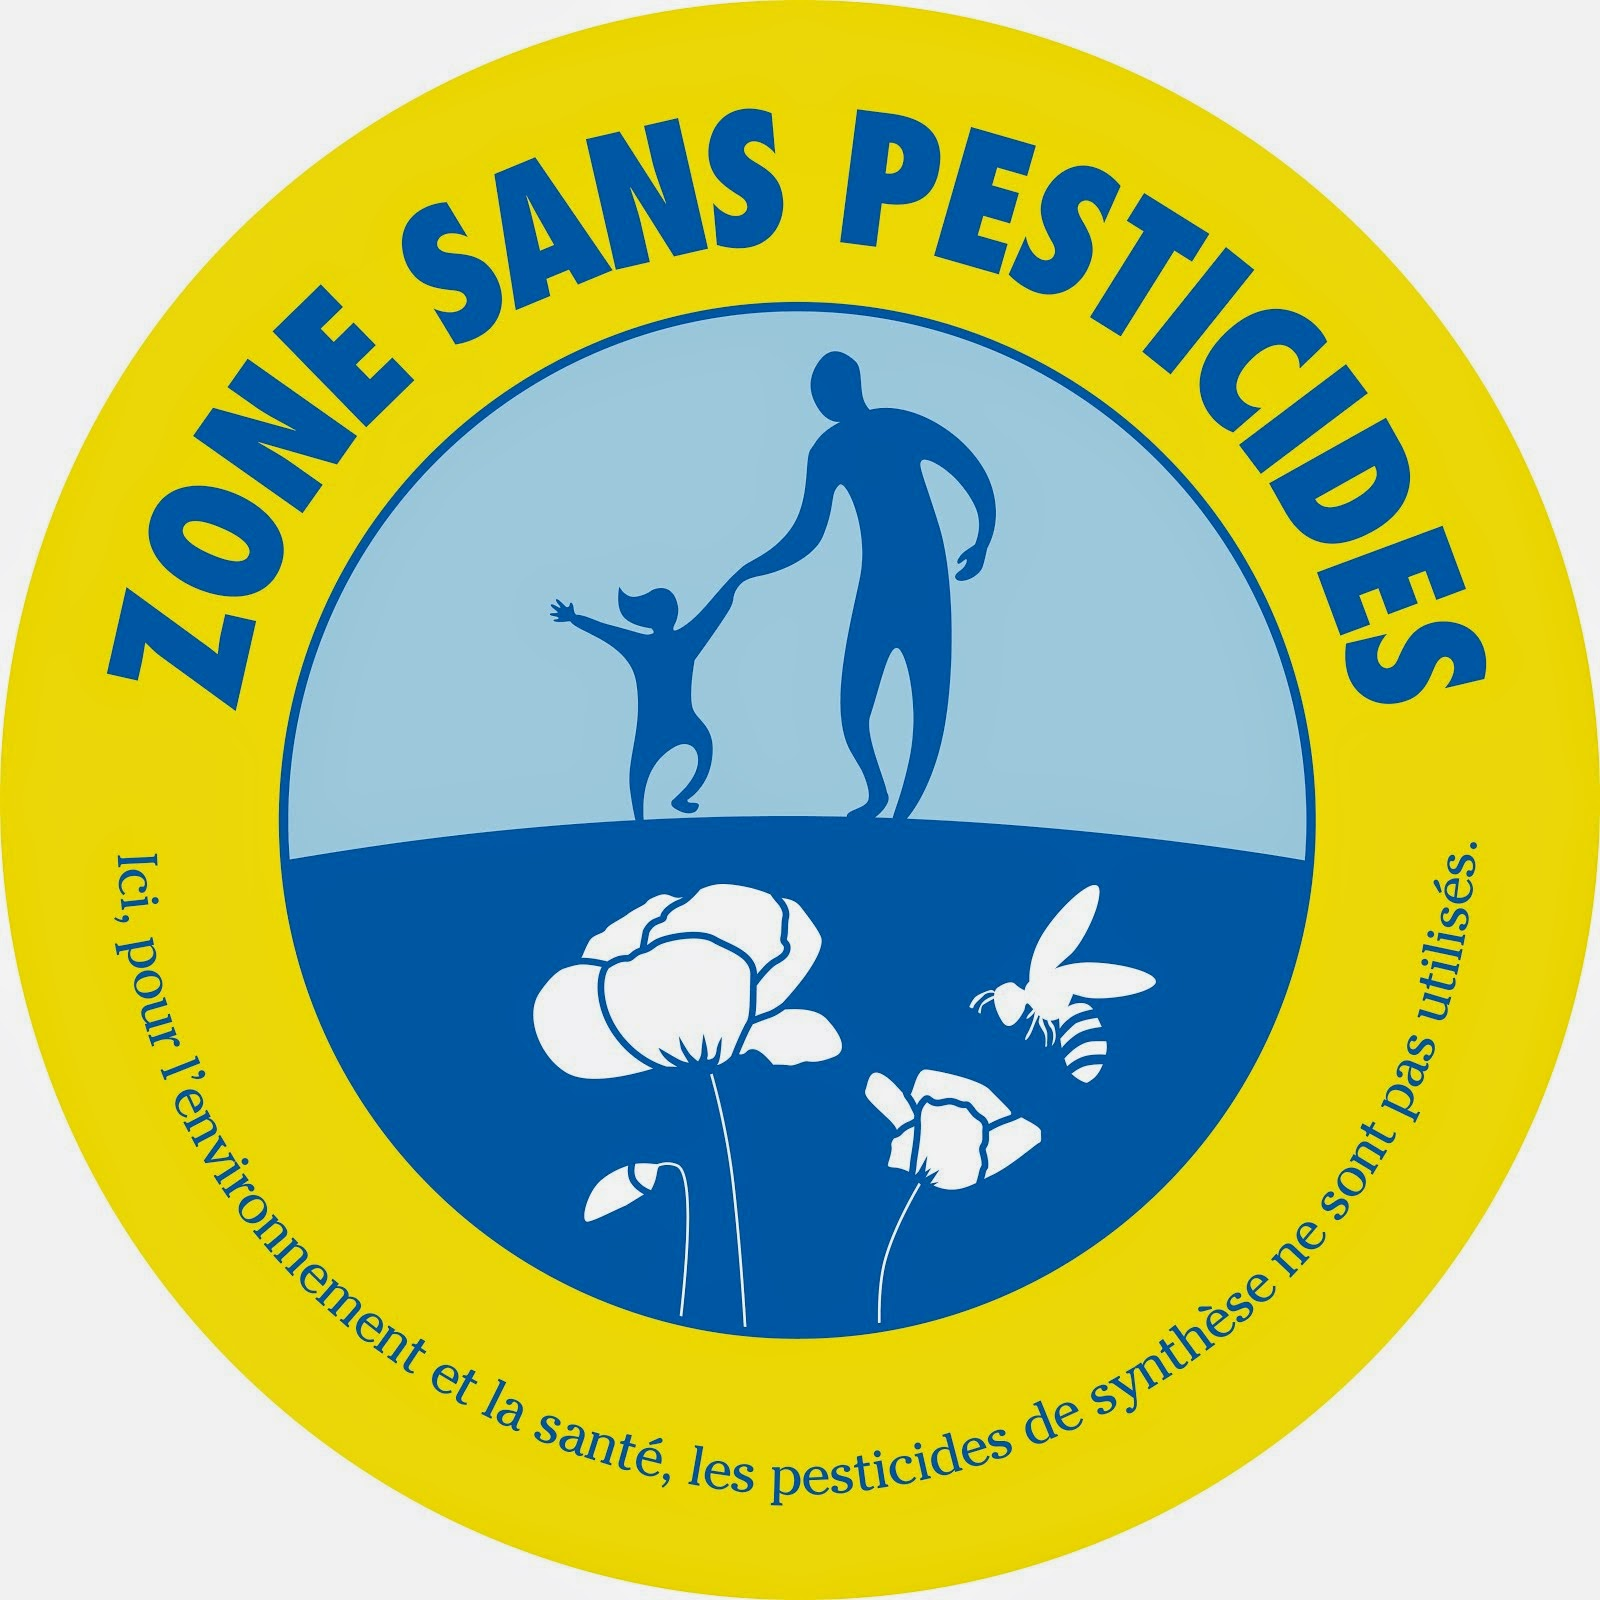 Ici : zone sans pesticides